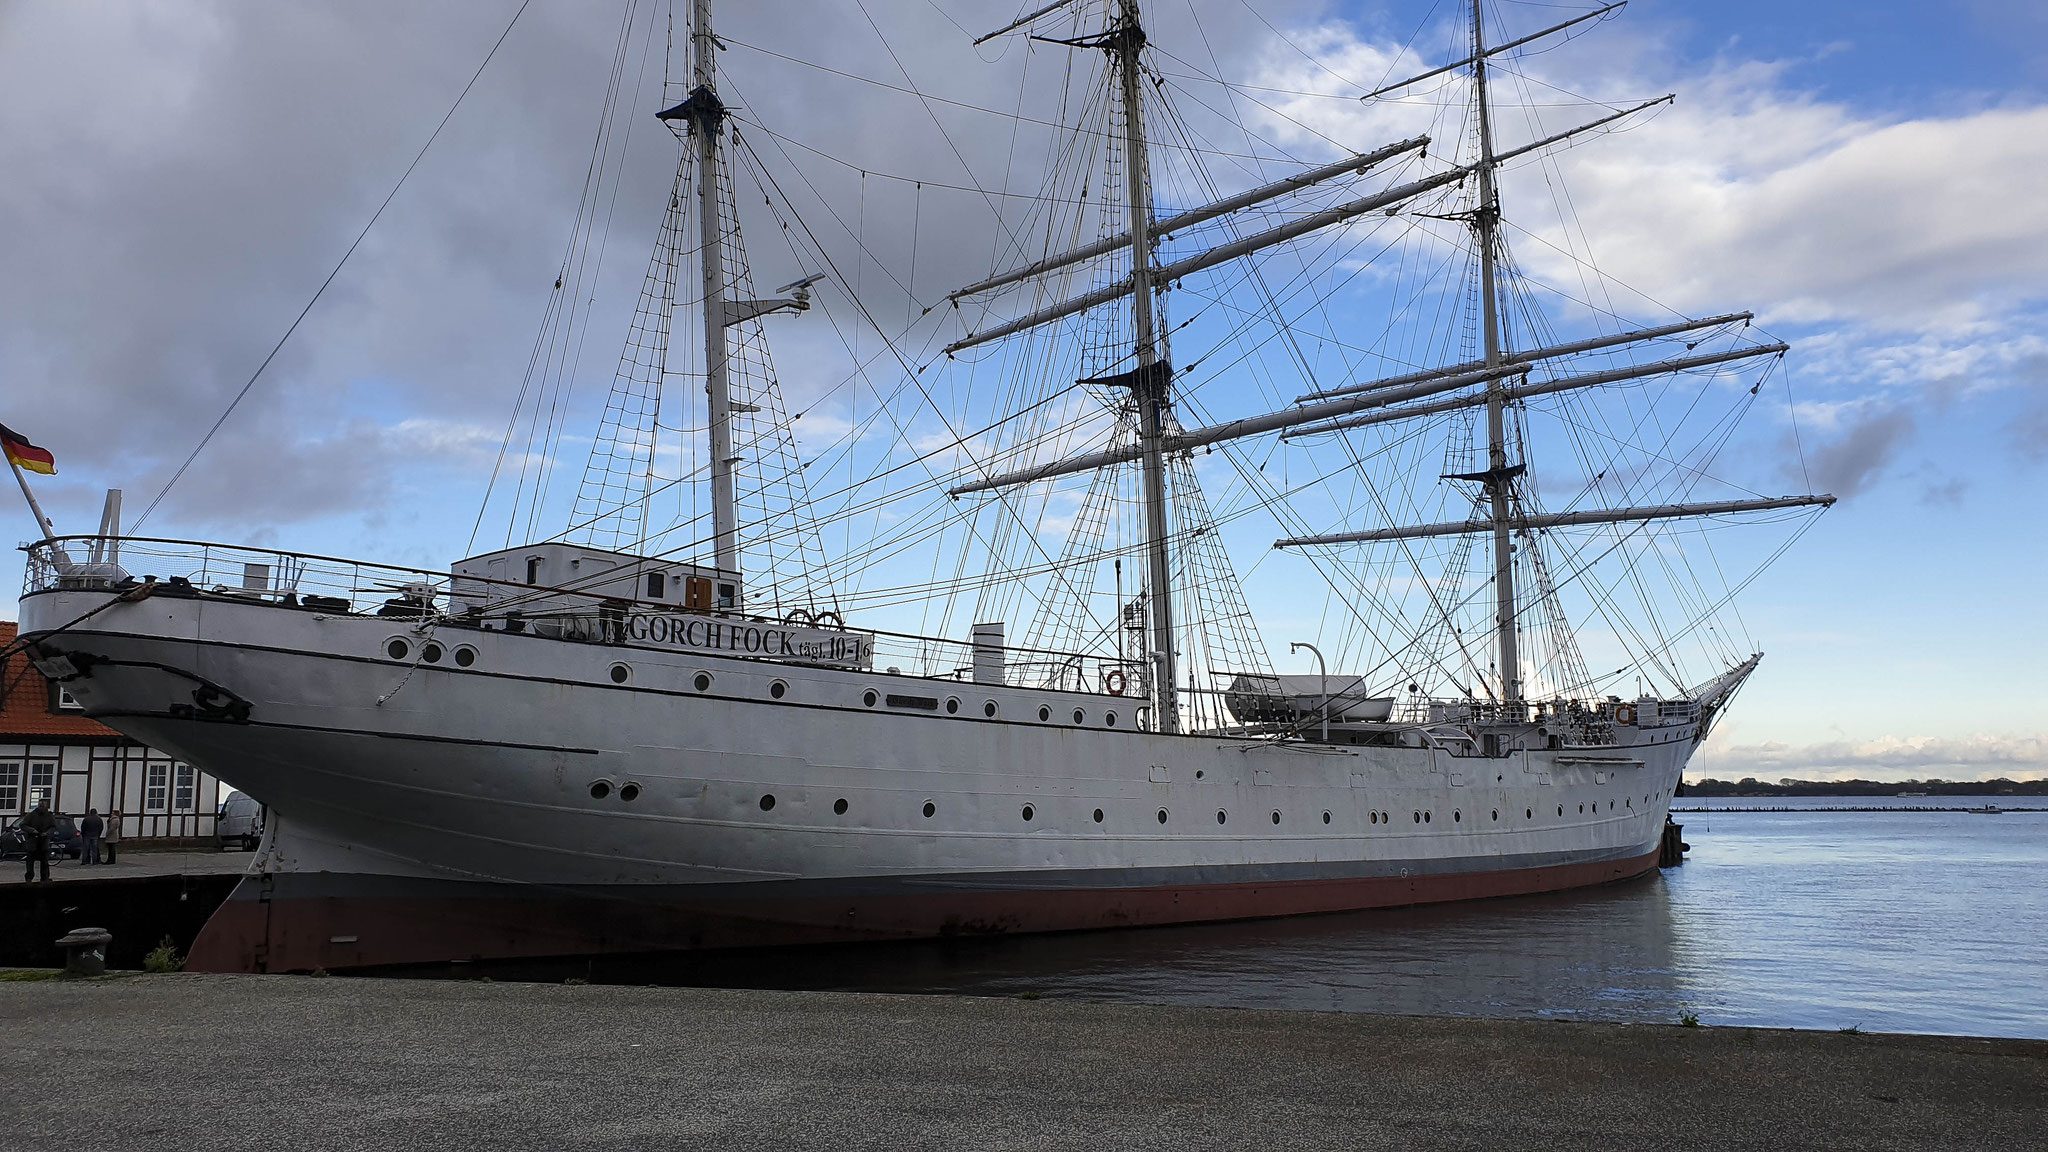 Die Gorch Fock in Stralsund